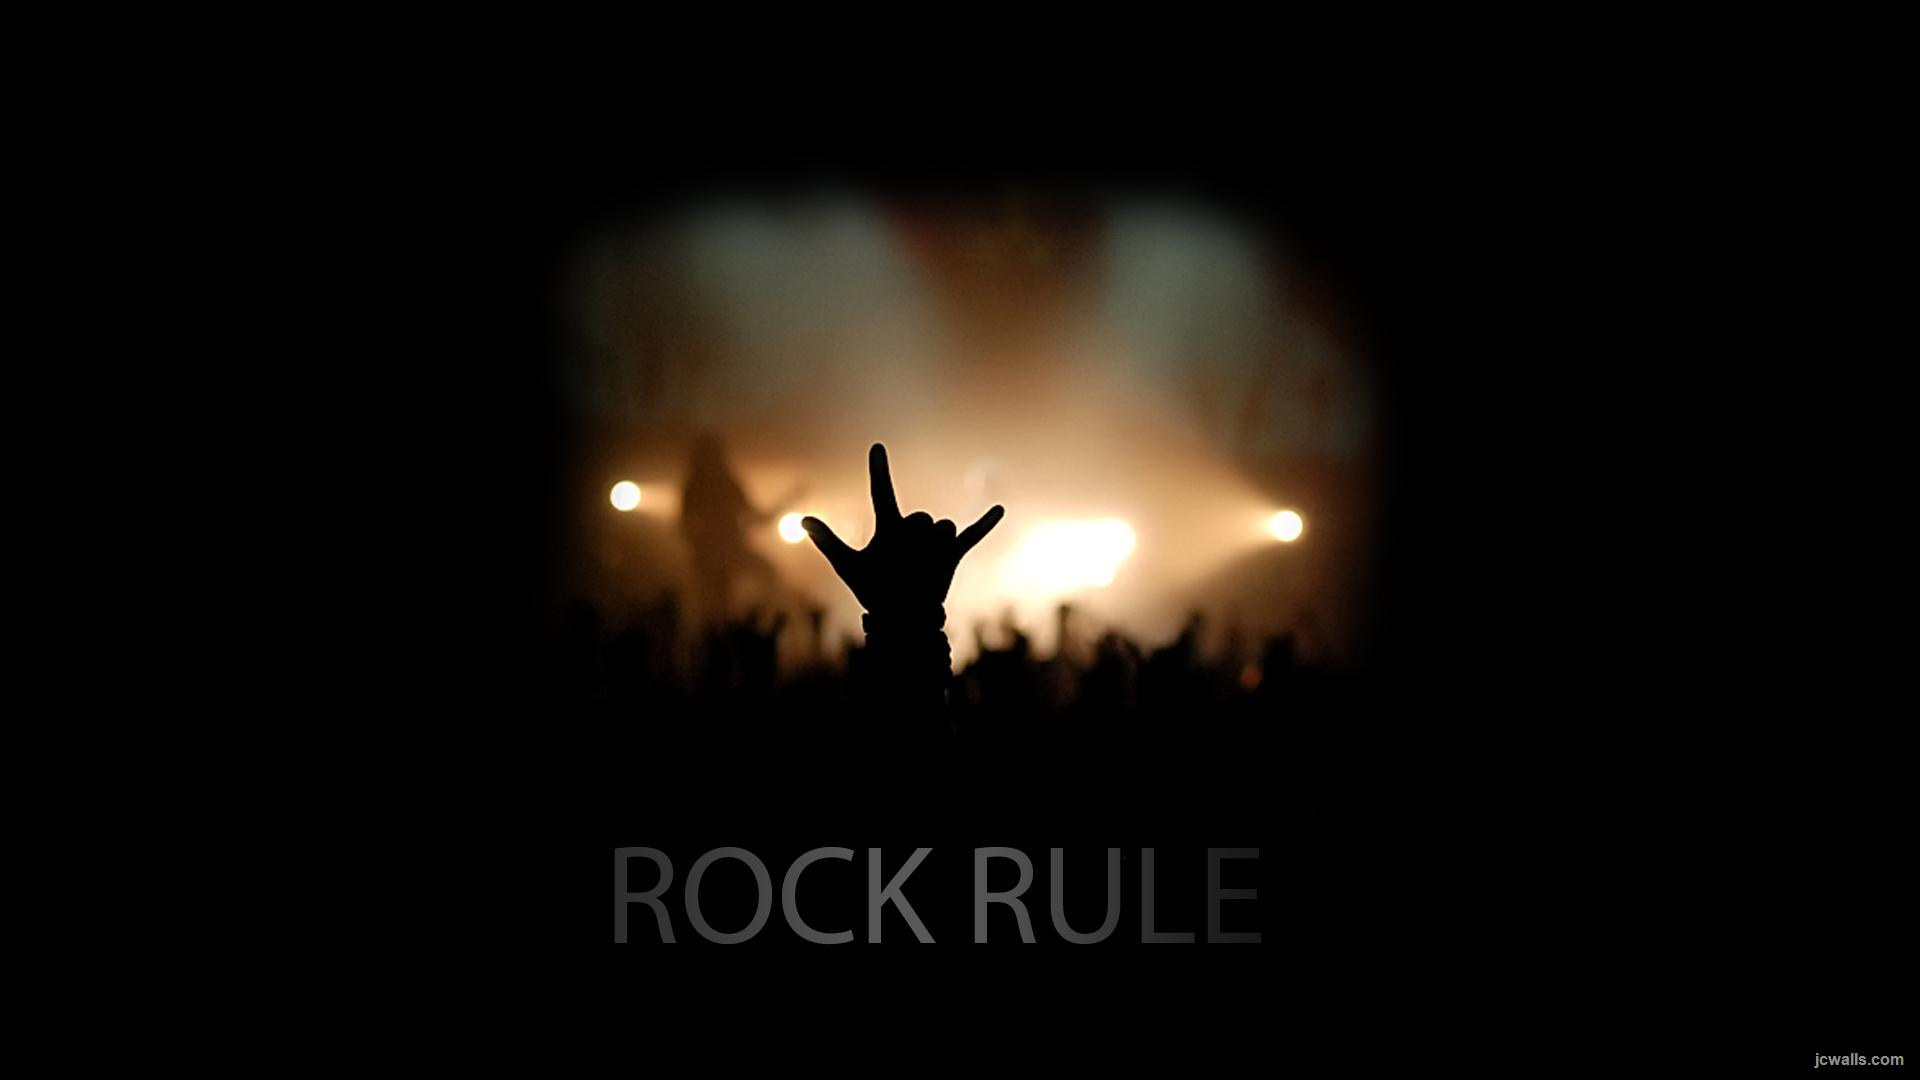 Rock Music Wallpaper: Rock Rule Full HD Wallpaper And Background Image